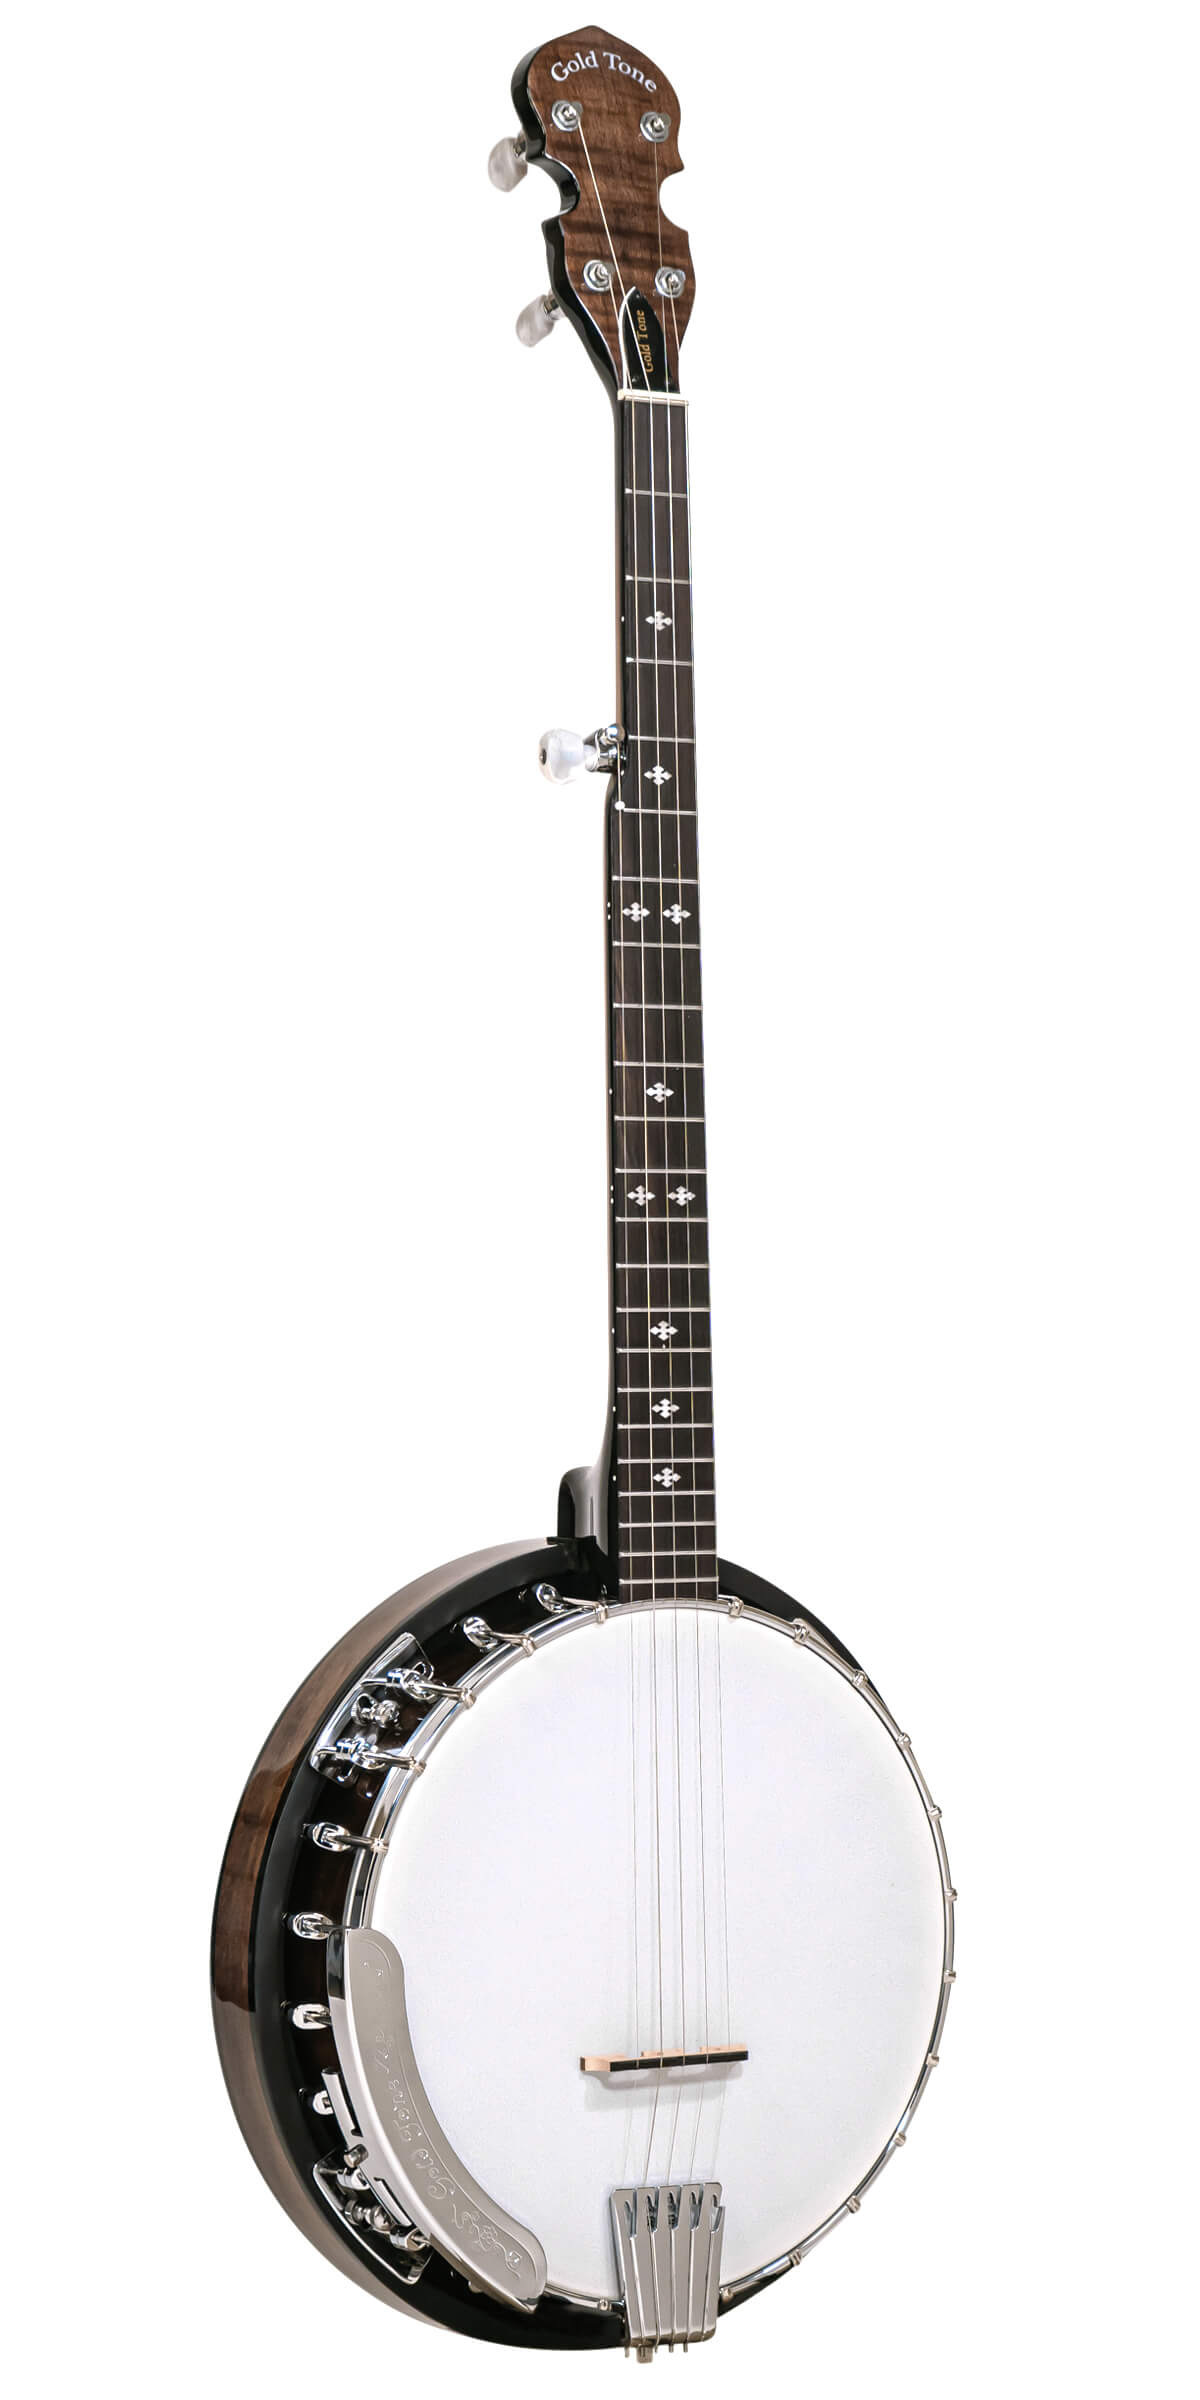 CC-100R+: Cripple Creek Resonator Banjo Upgraded